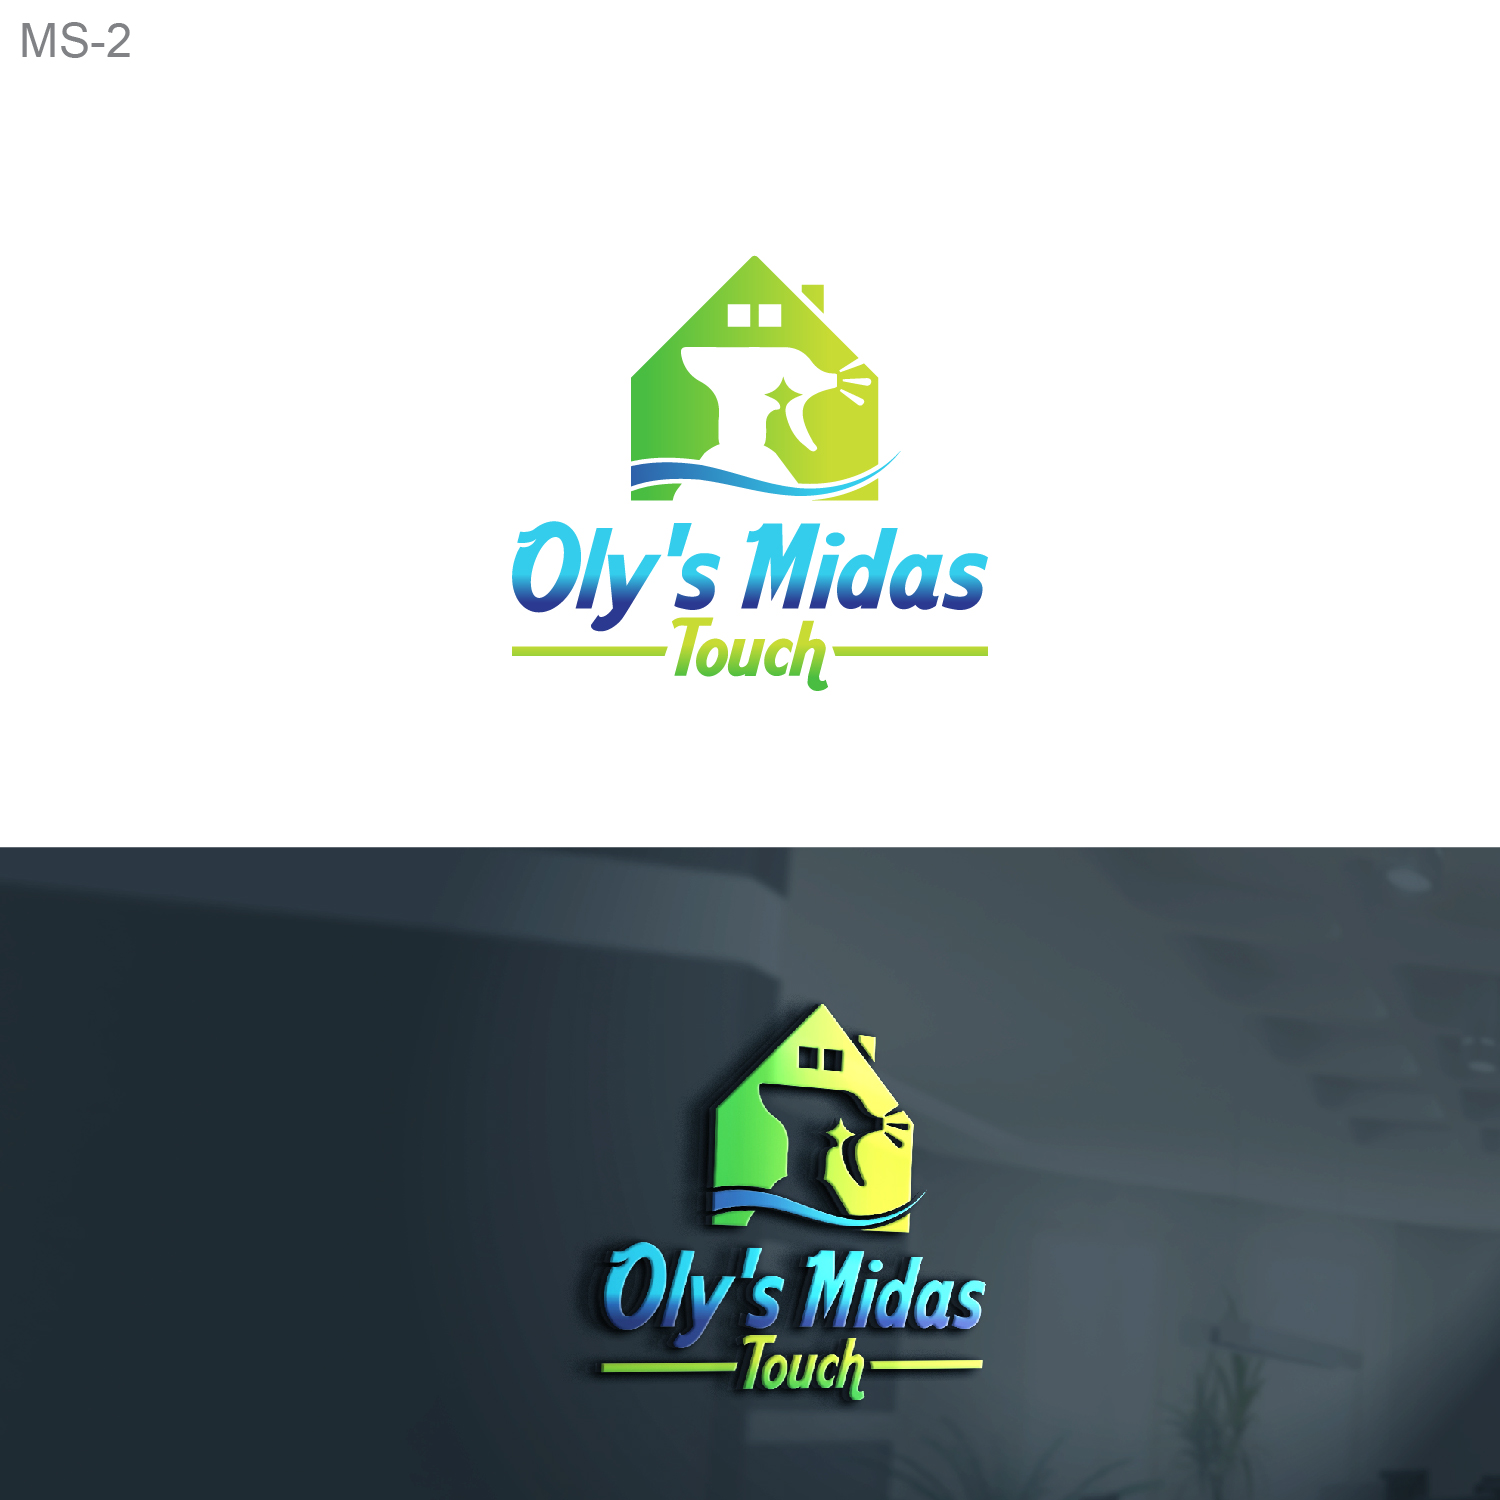 Elegant Playful Cleaning Service Logo Design For Oly S Midas Touch By Esolbiz Design 22423159